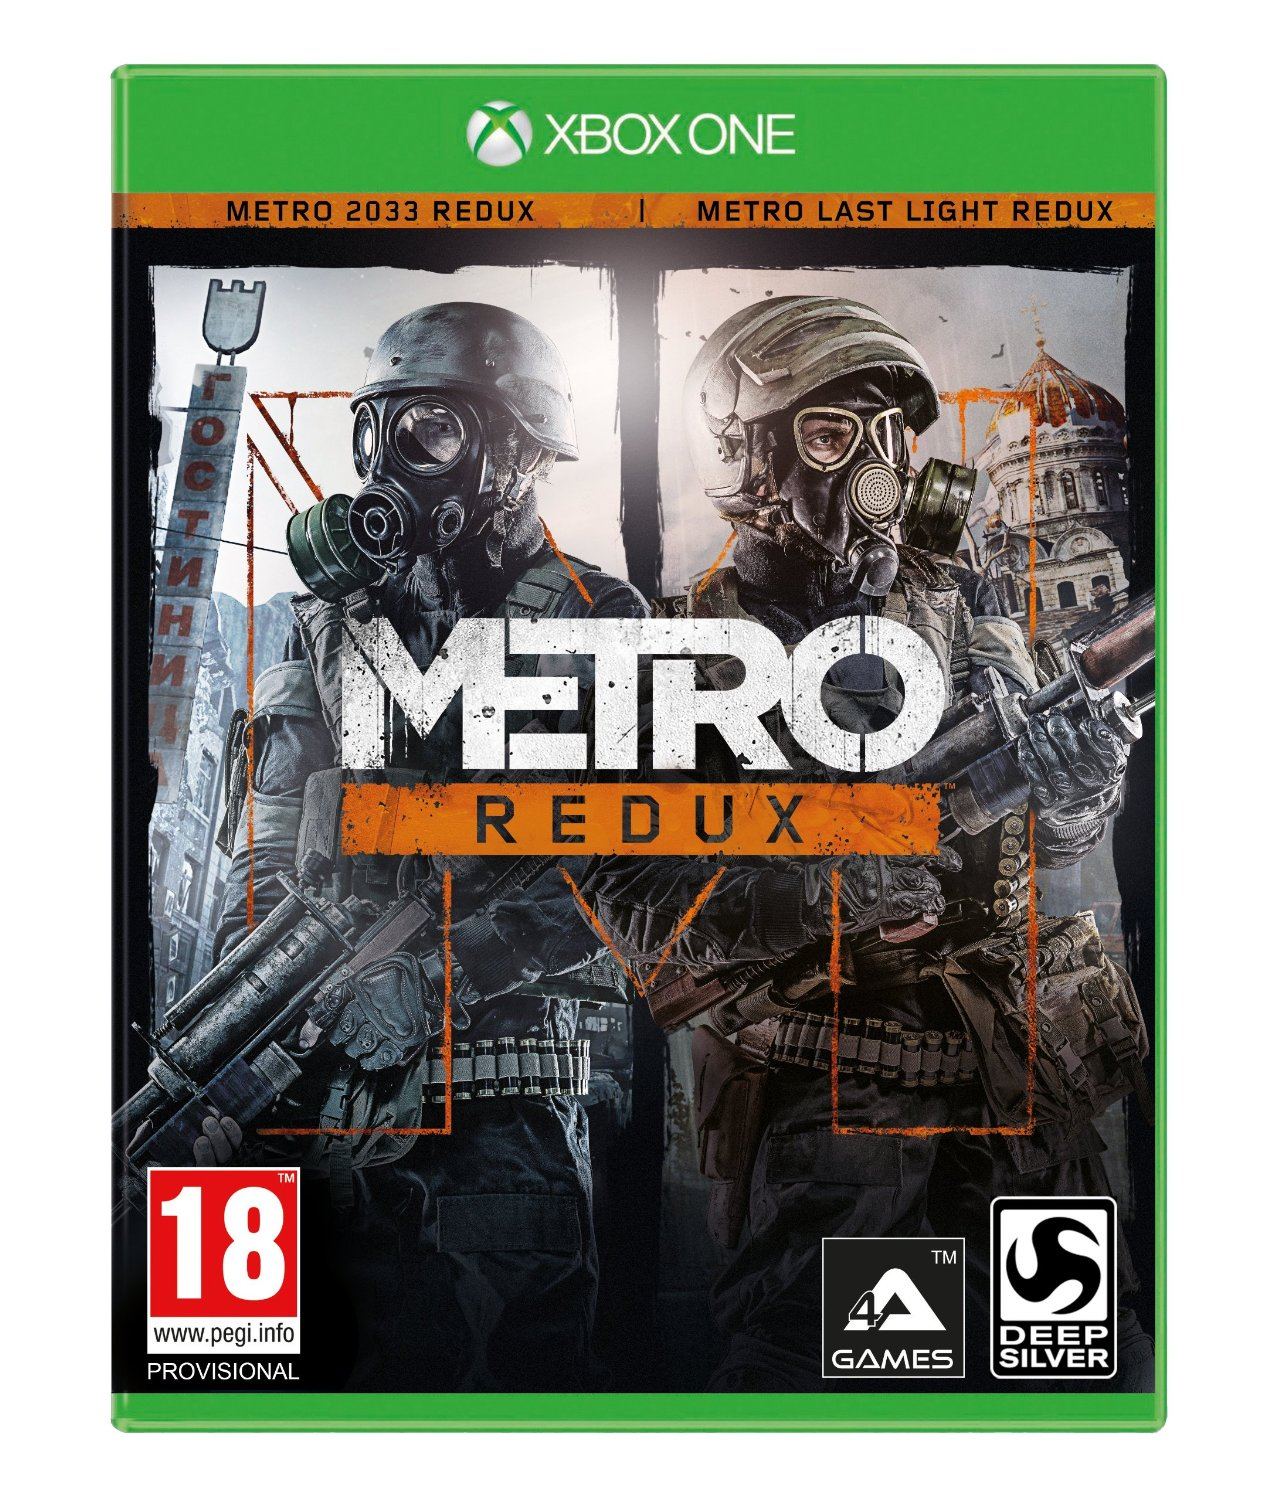 Metro Redux-Xbox One                                                                                                                                   By:4A Games                                           Eur:37.4 Ден:1999